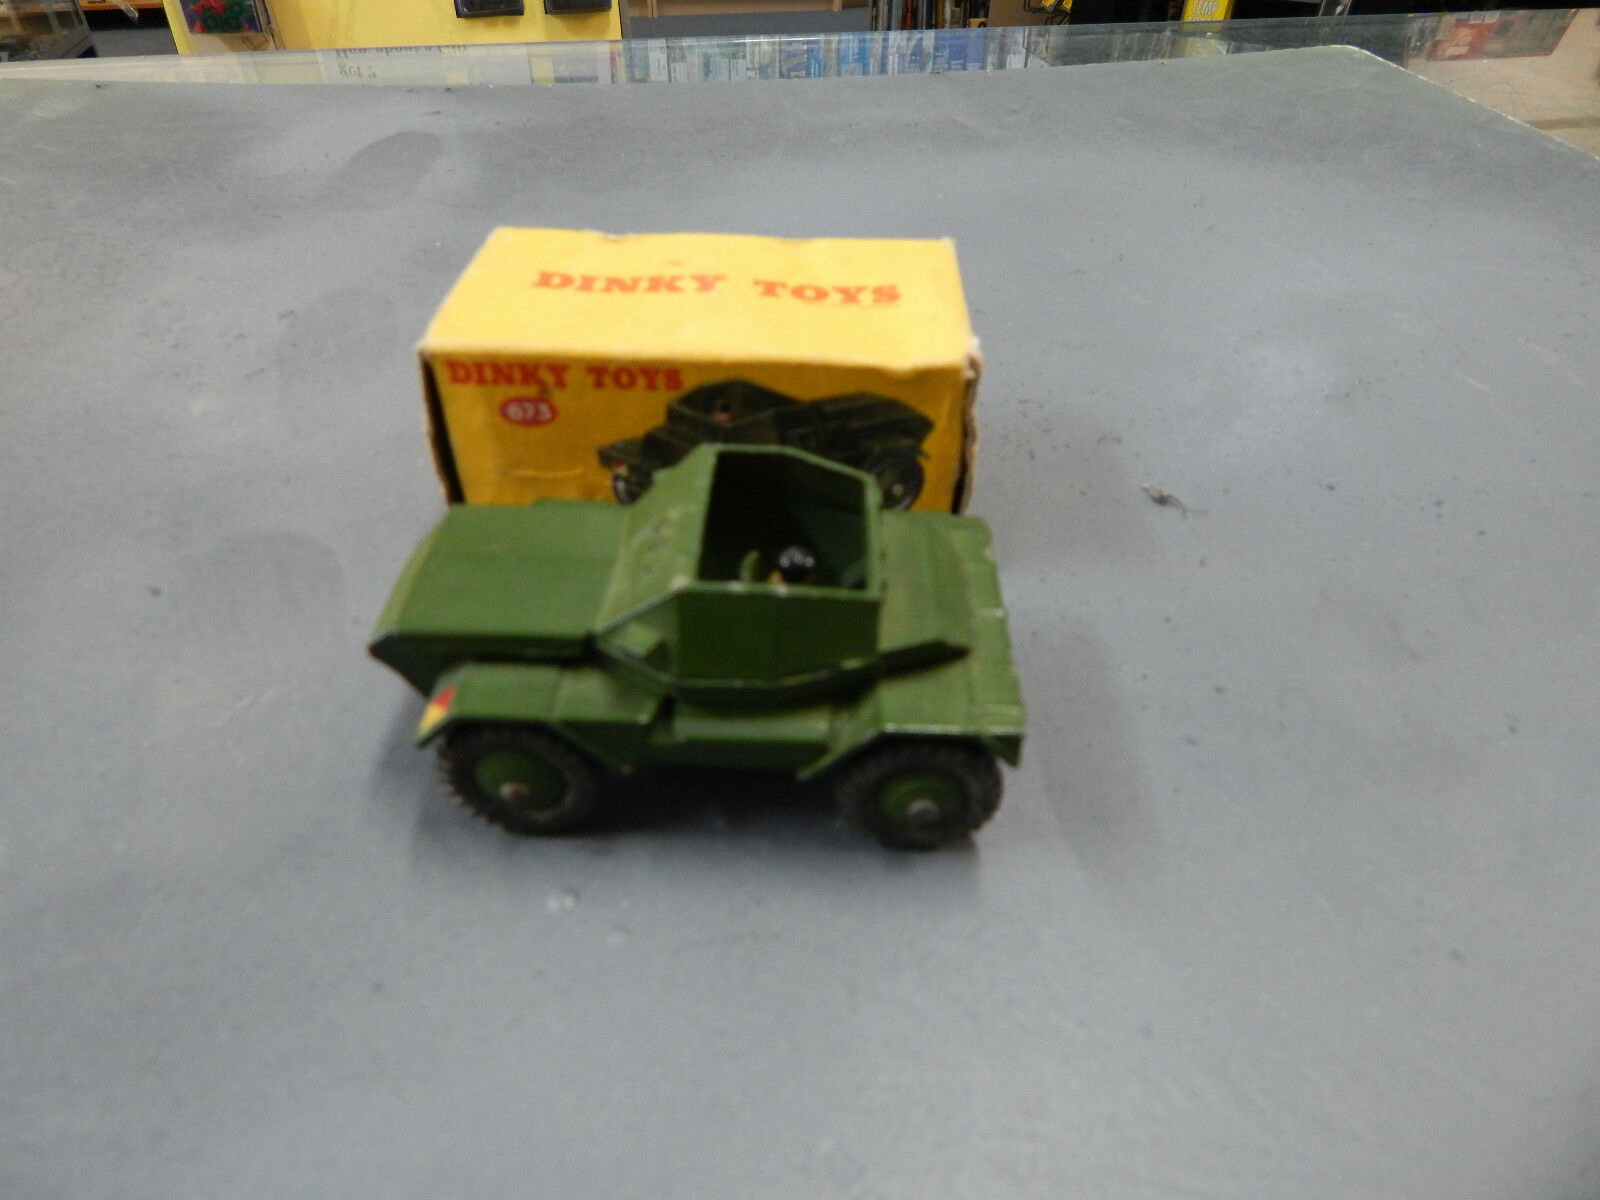 Dinky Scout Car with box